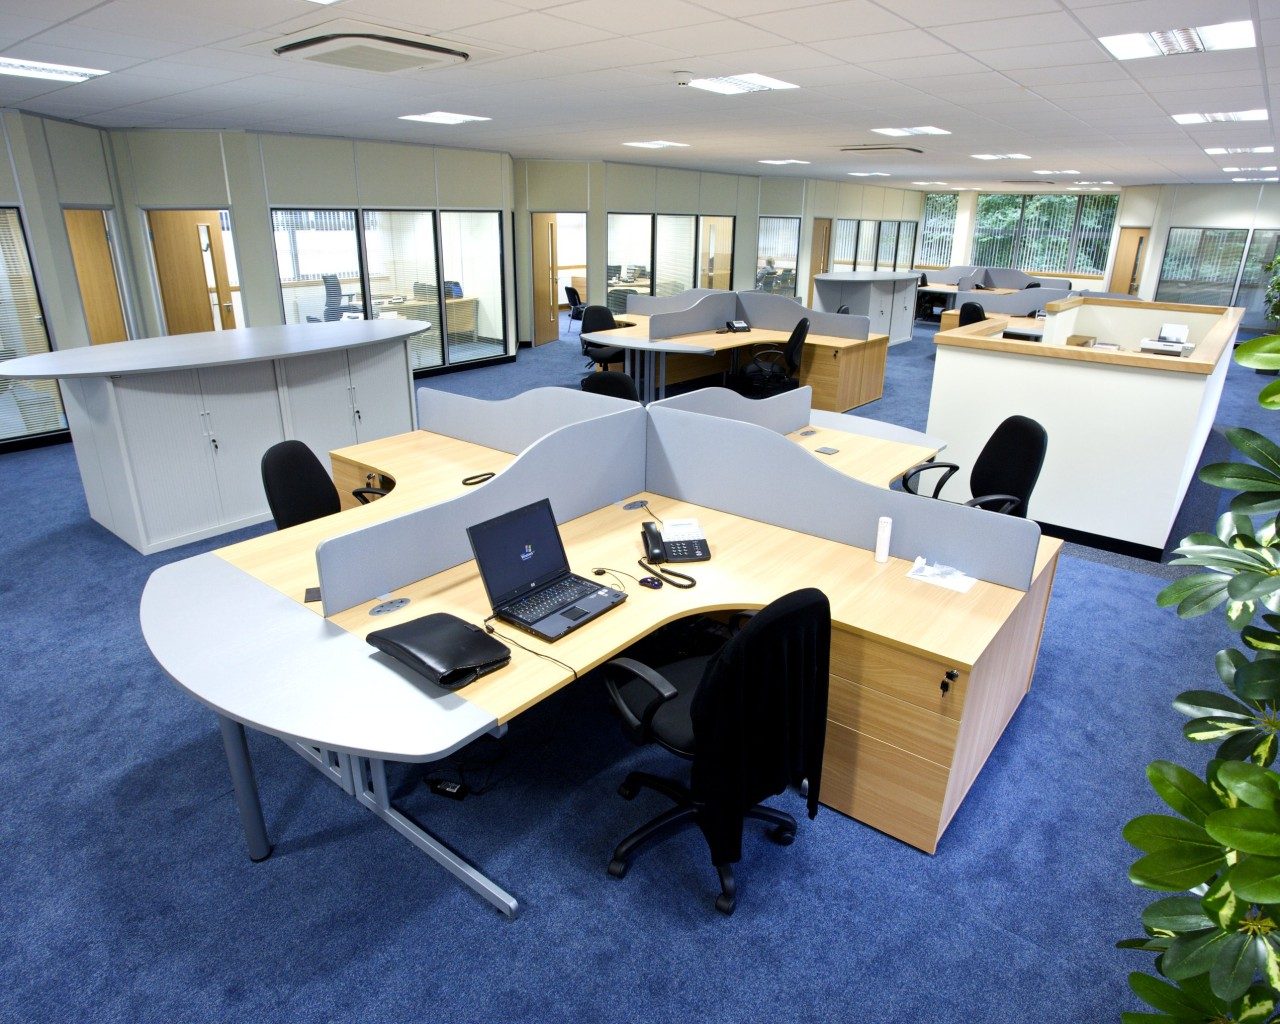 Office space planning, Yorkshire, Leeds, Huddersfield, Halifax, Bradford, Wakefield.